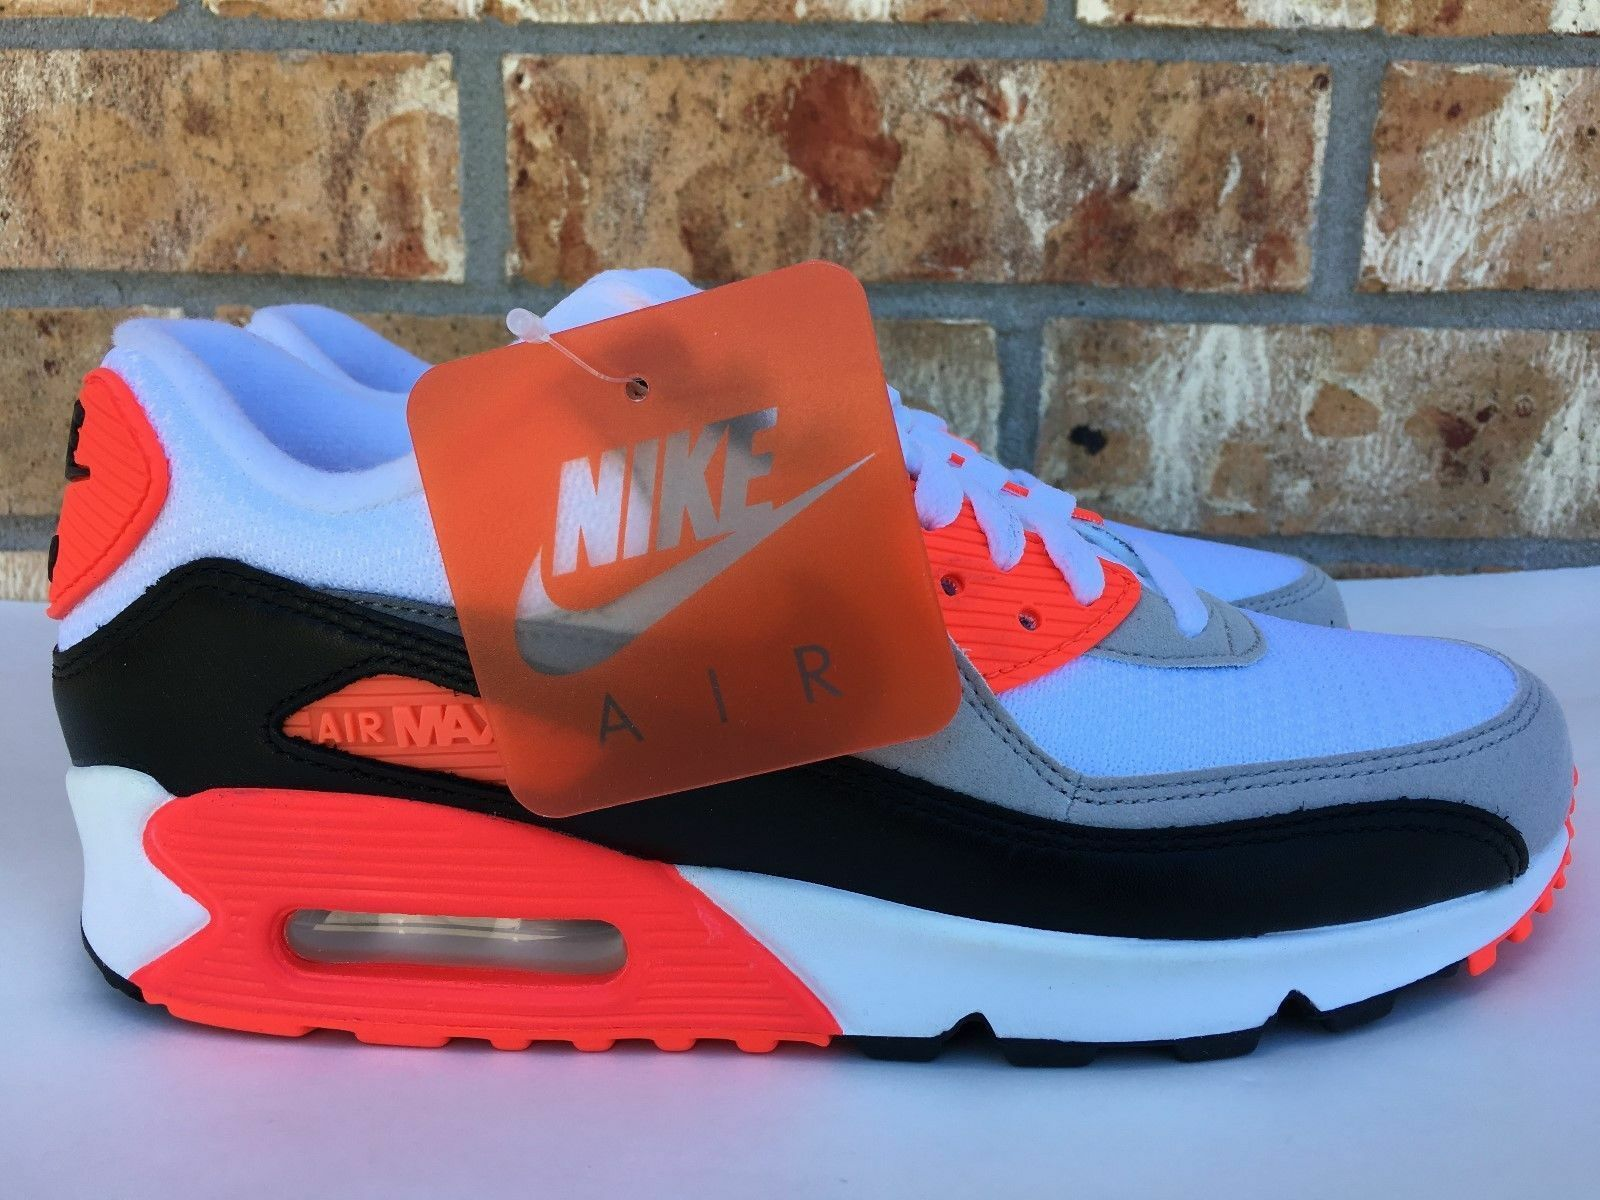 Nike Air Max 90 OG Wmns Shoes Infrared Cool Grey White LIMITED 742455-100 Sz 8